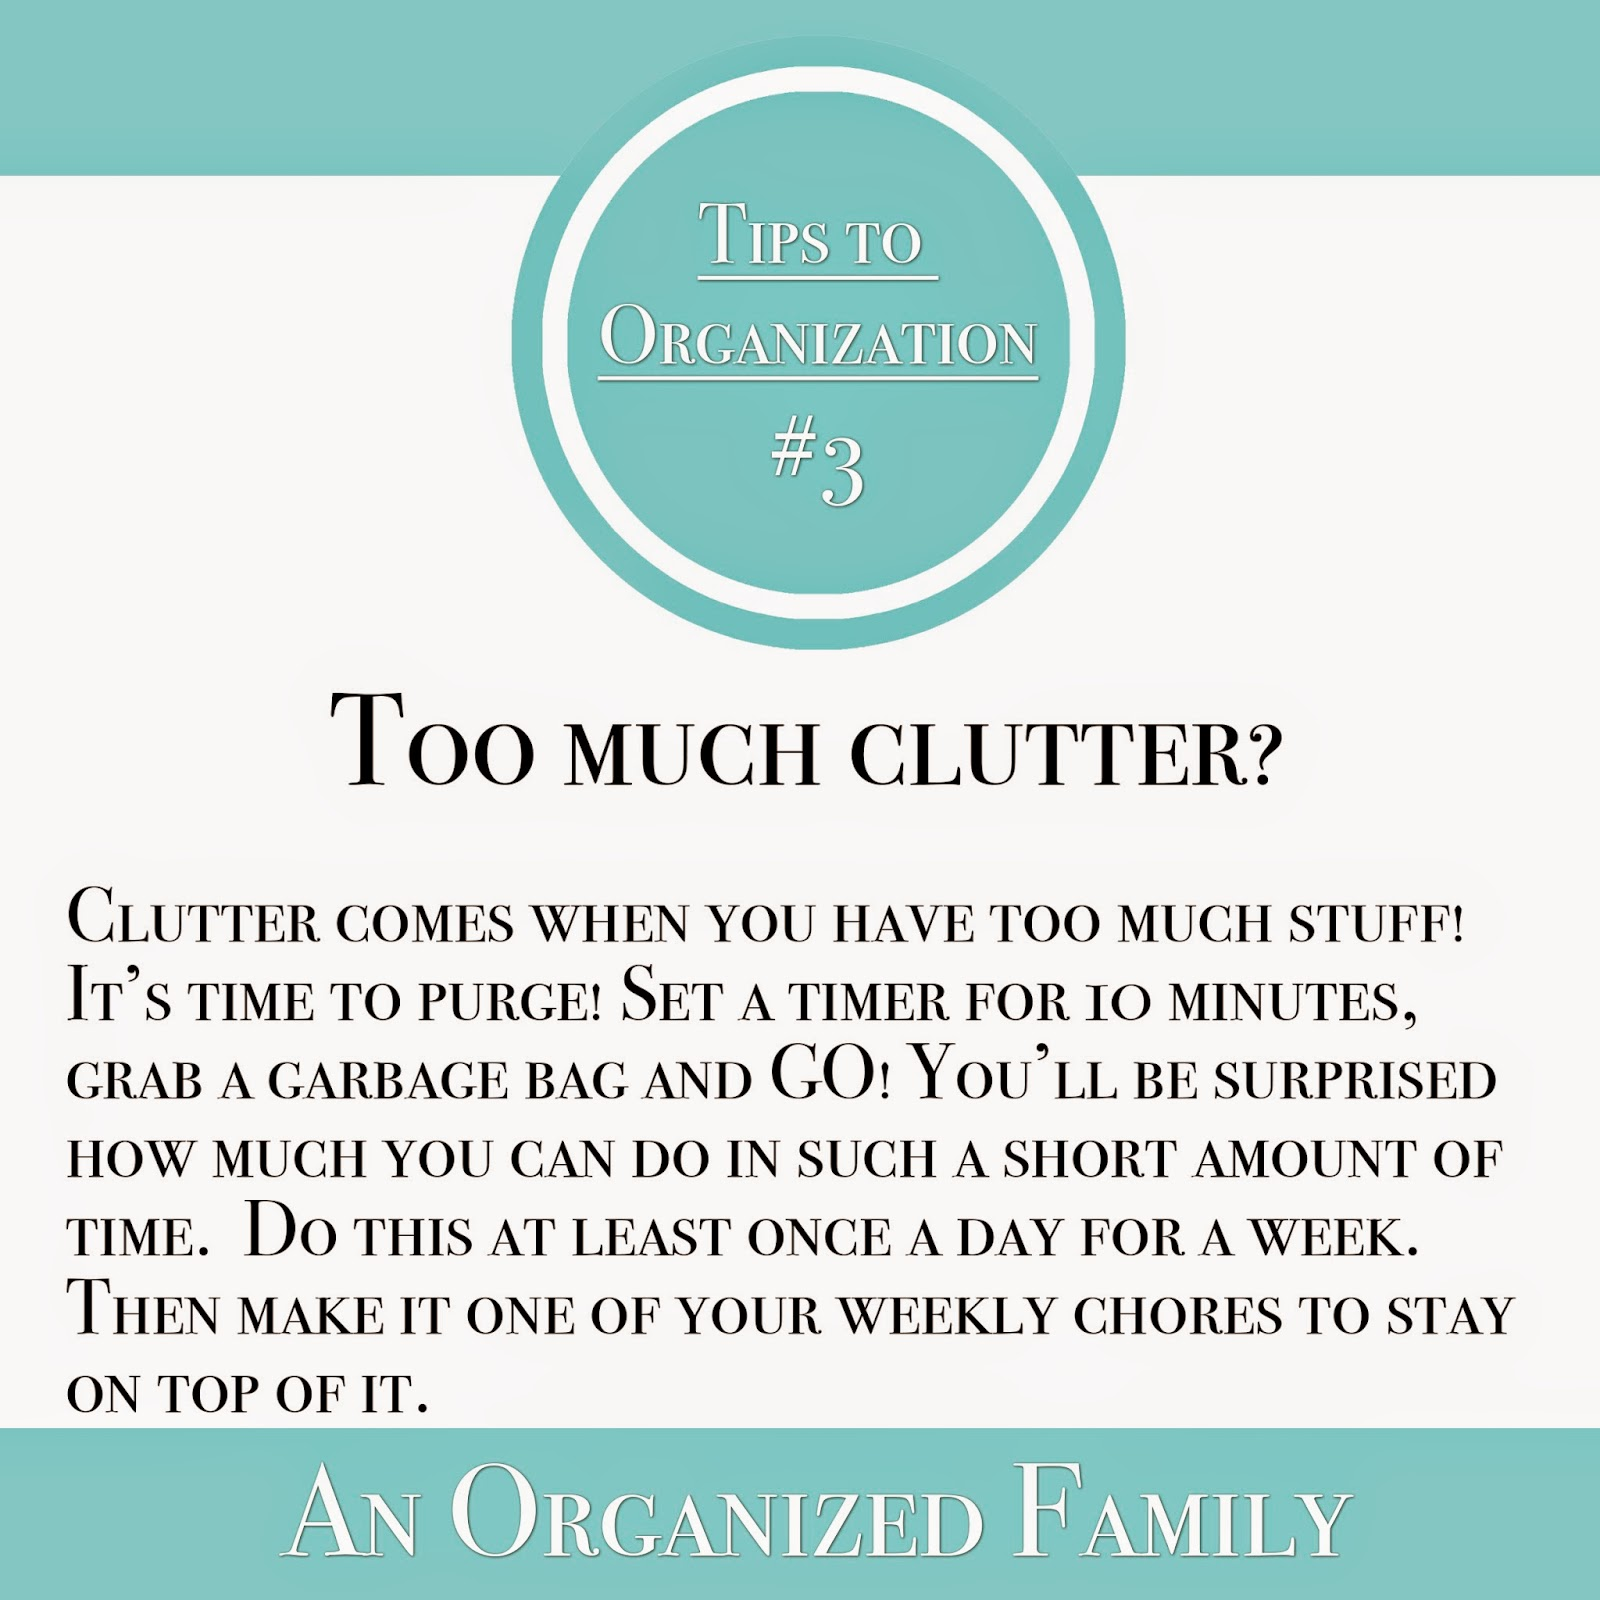 Tips to organization - too much clutter